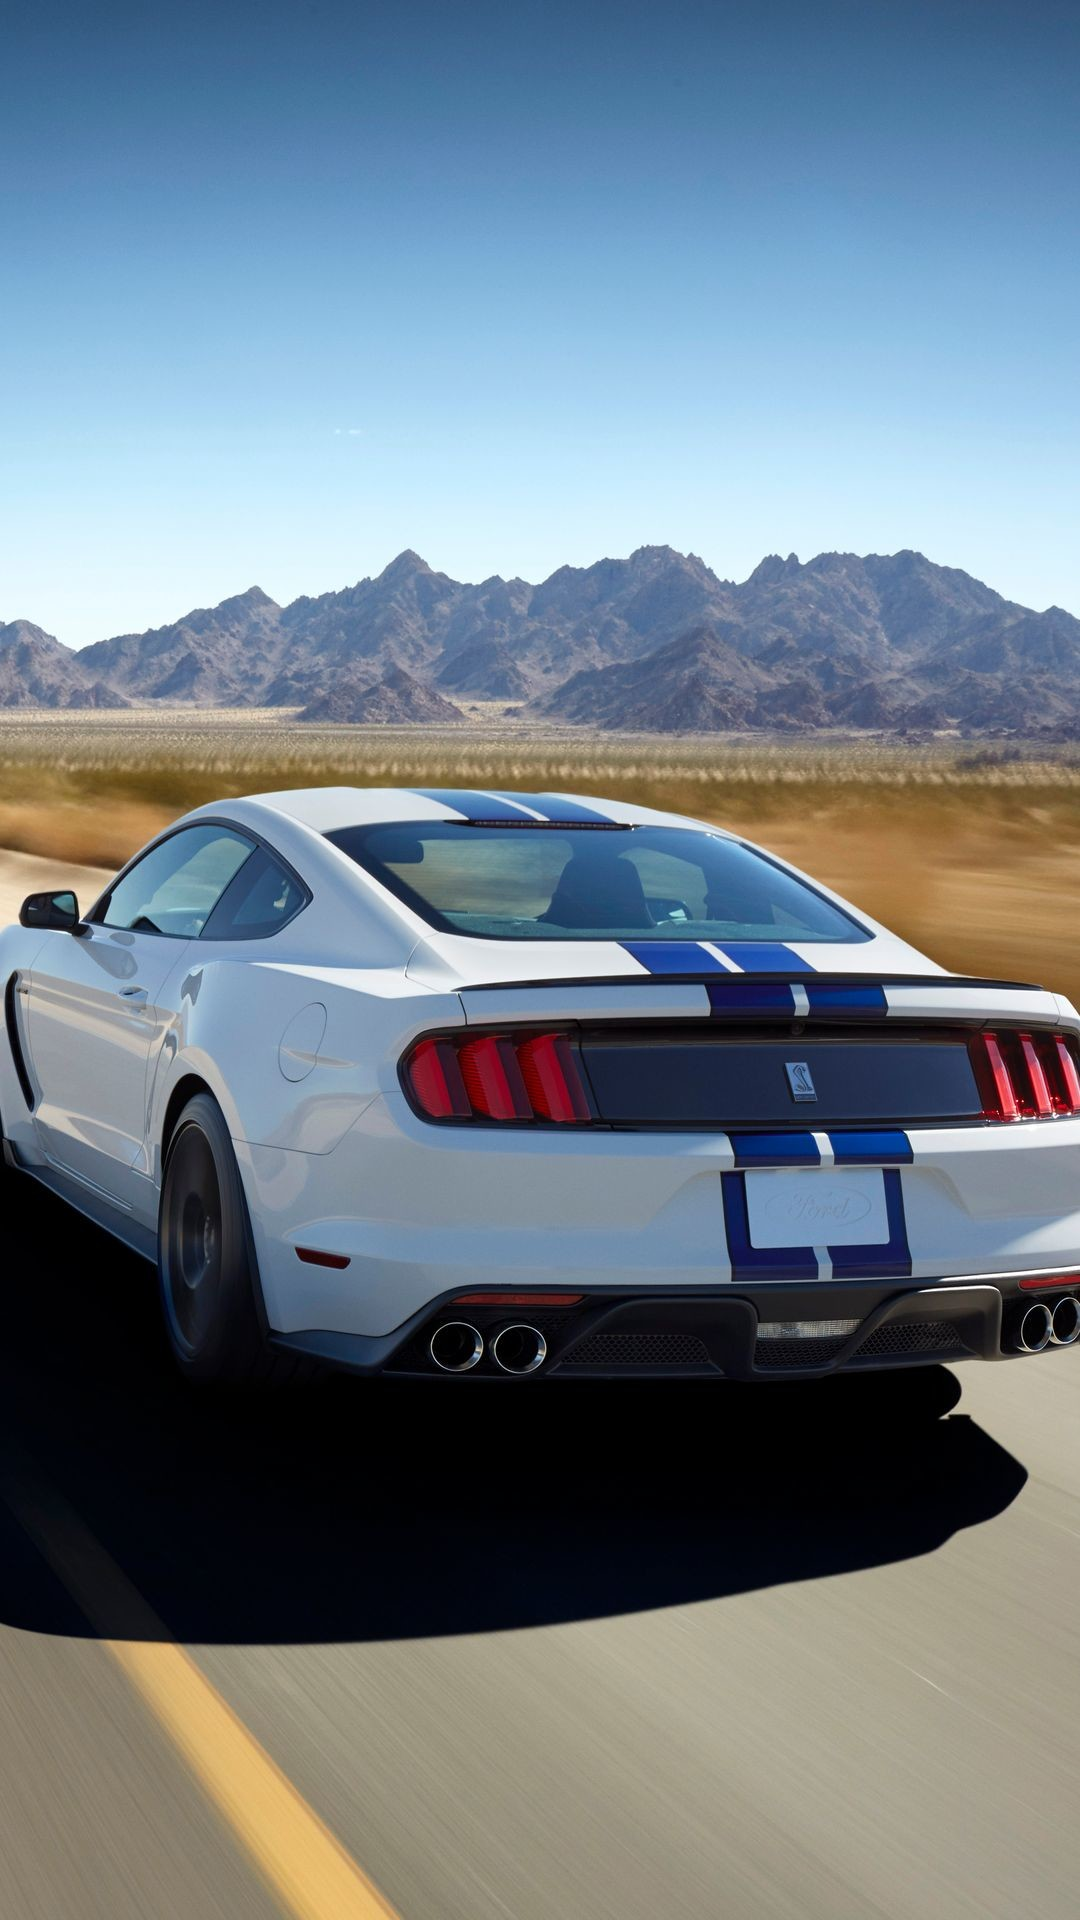 Ford Mustang Wallpaper For Phone